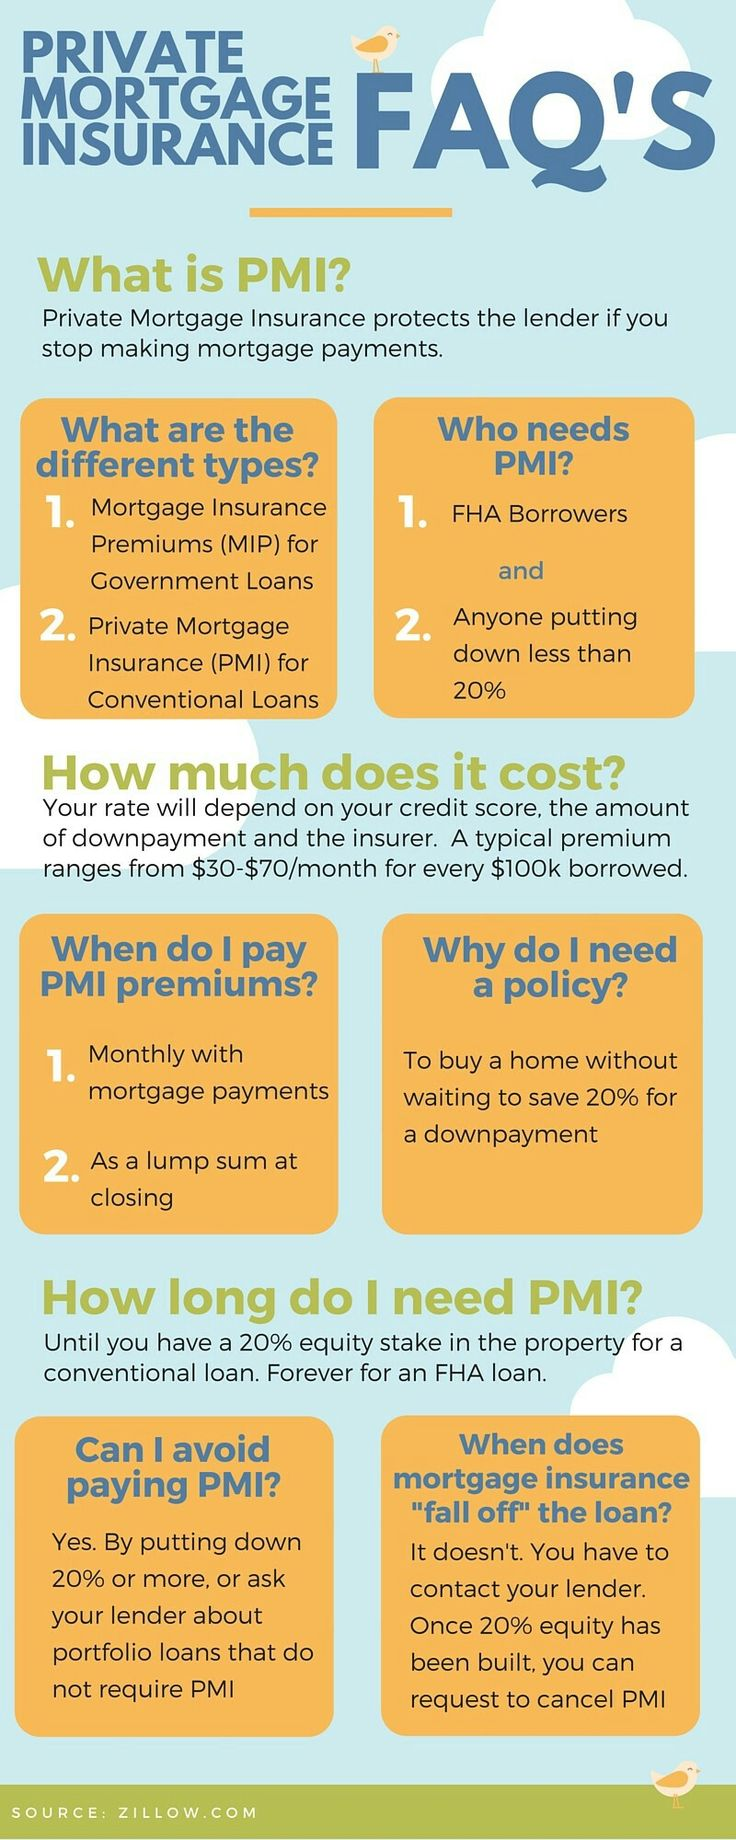 Private Mortgage Insurance (PMI) FAQs